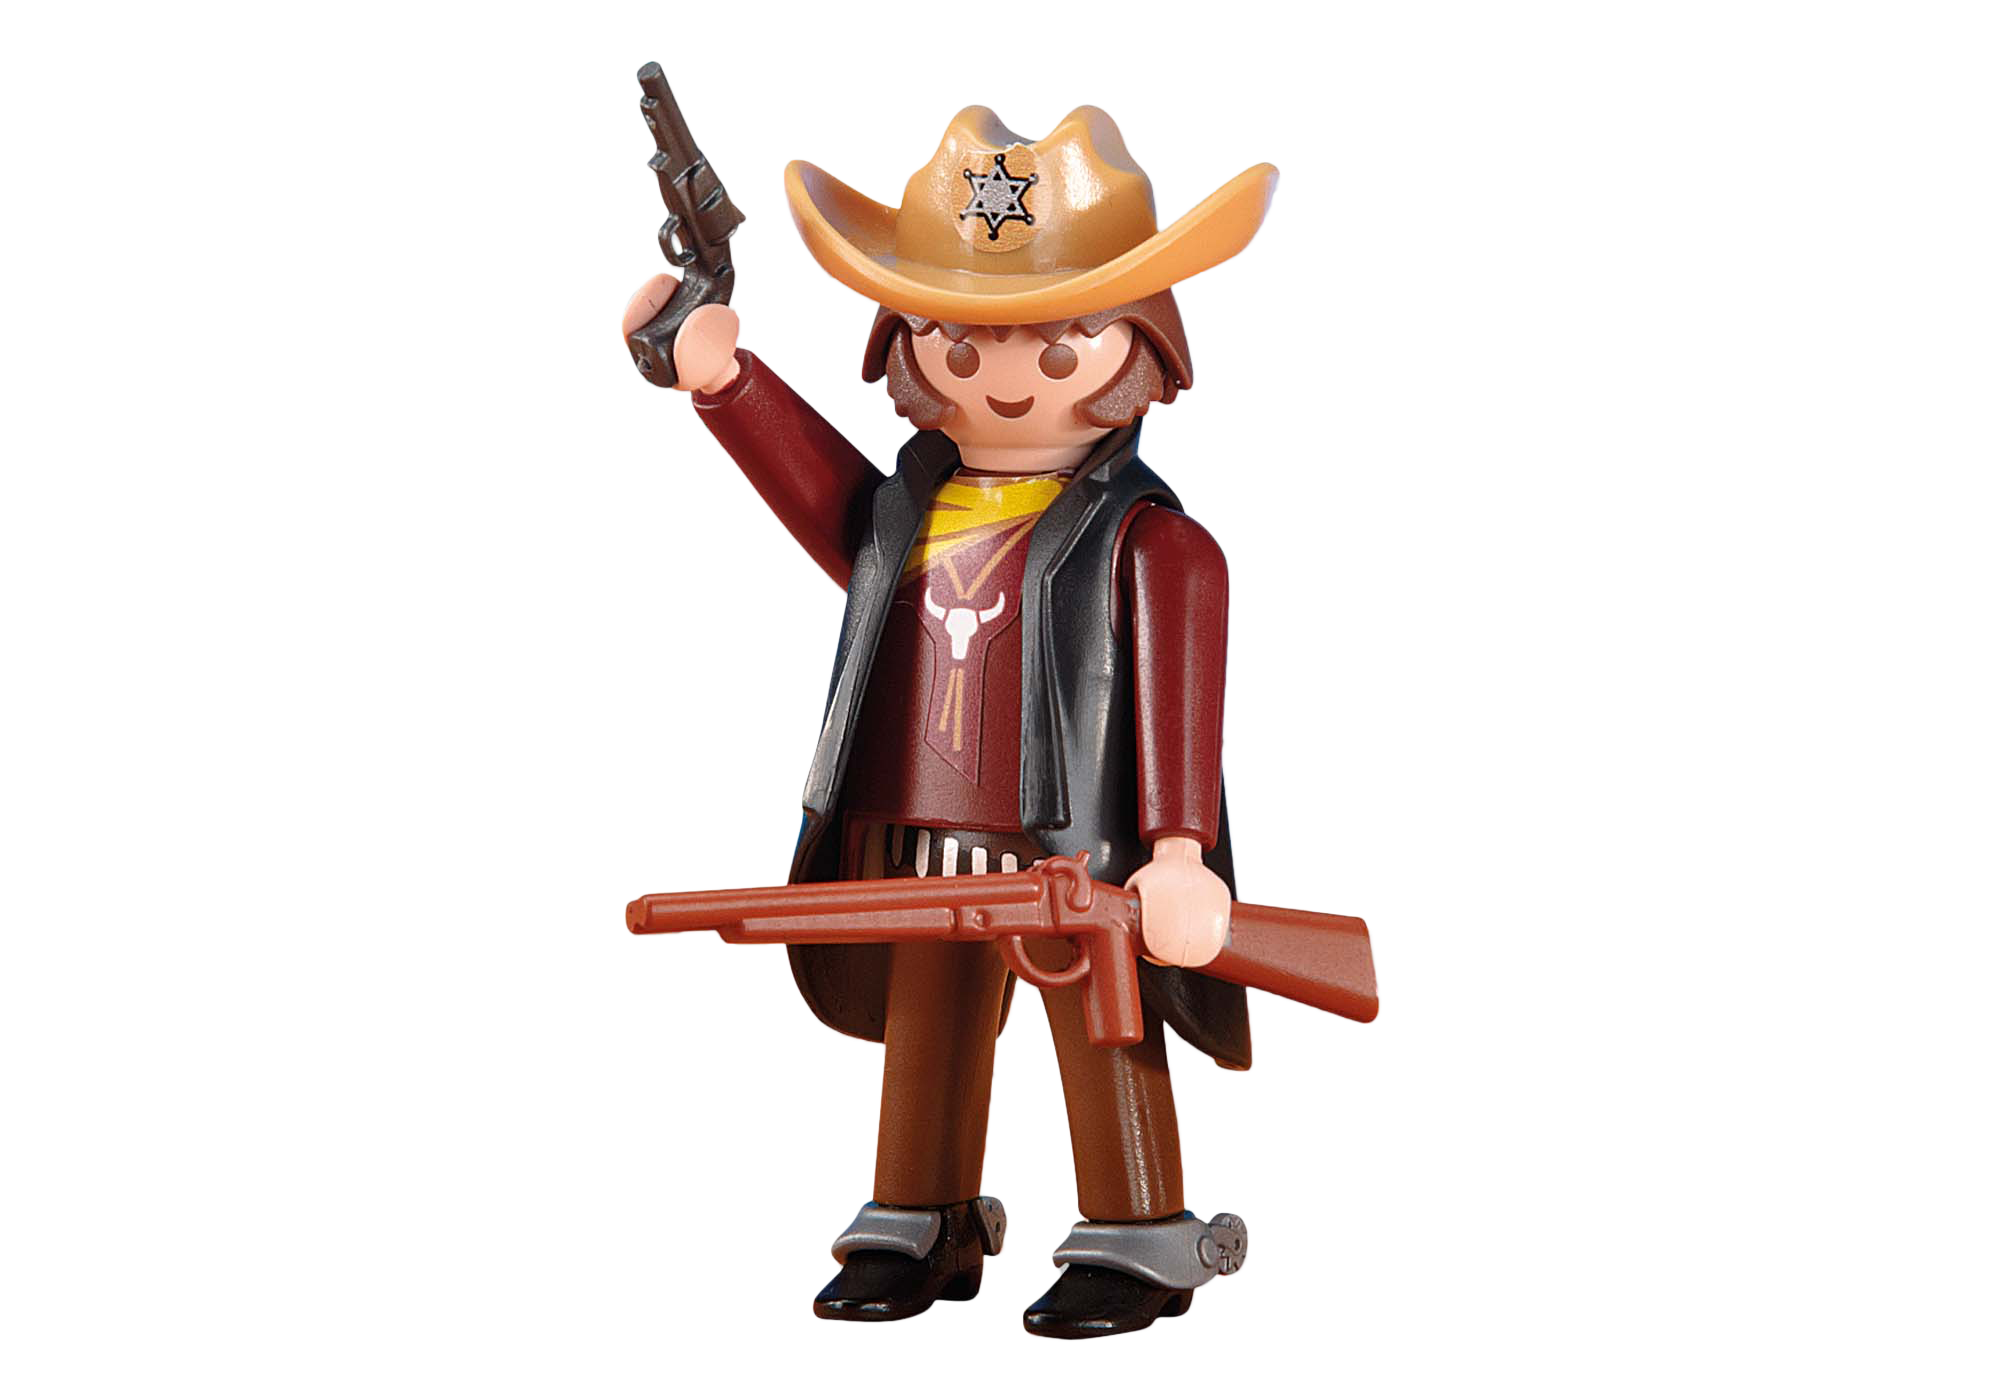 http://media.playmobil.com/i/playmobil/6277_product_detail